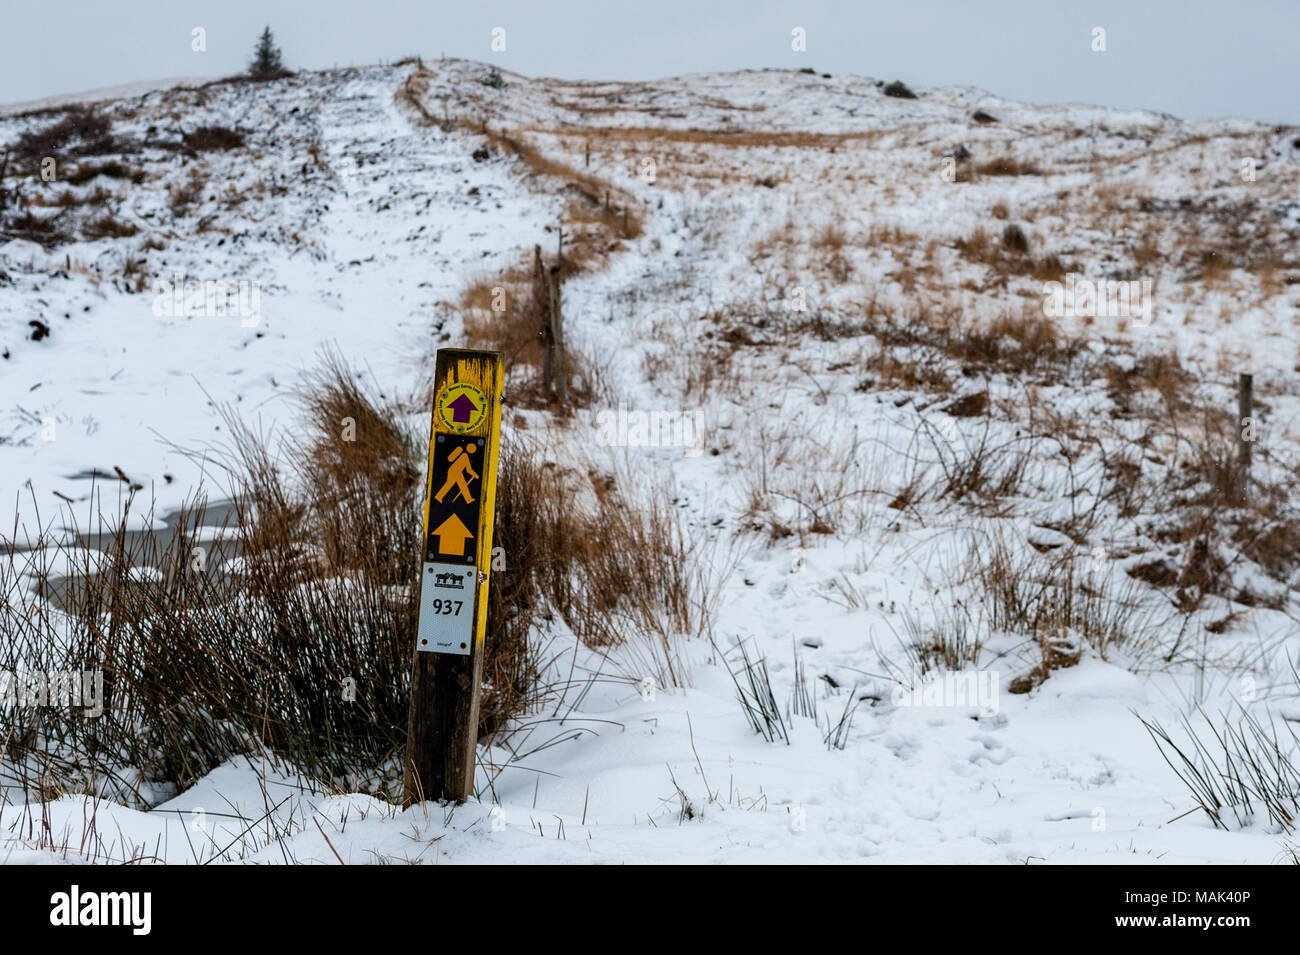 mount-corrin-signpost-in-the-snow-during